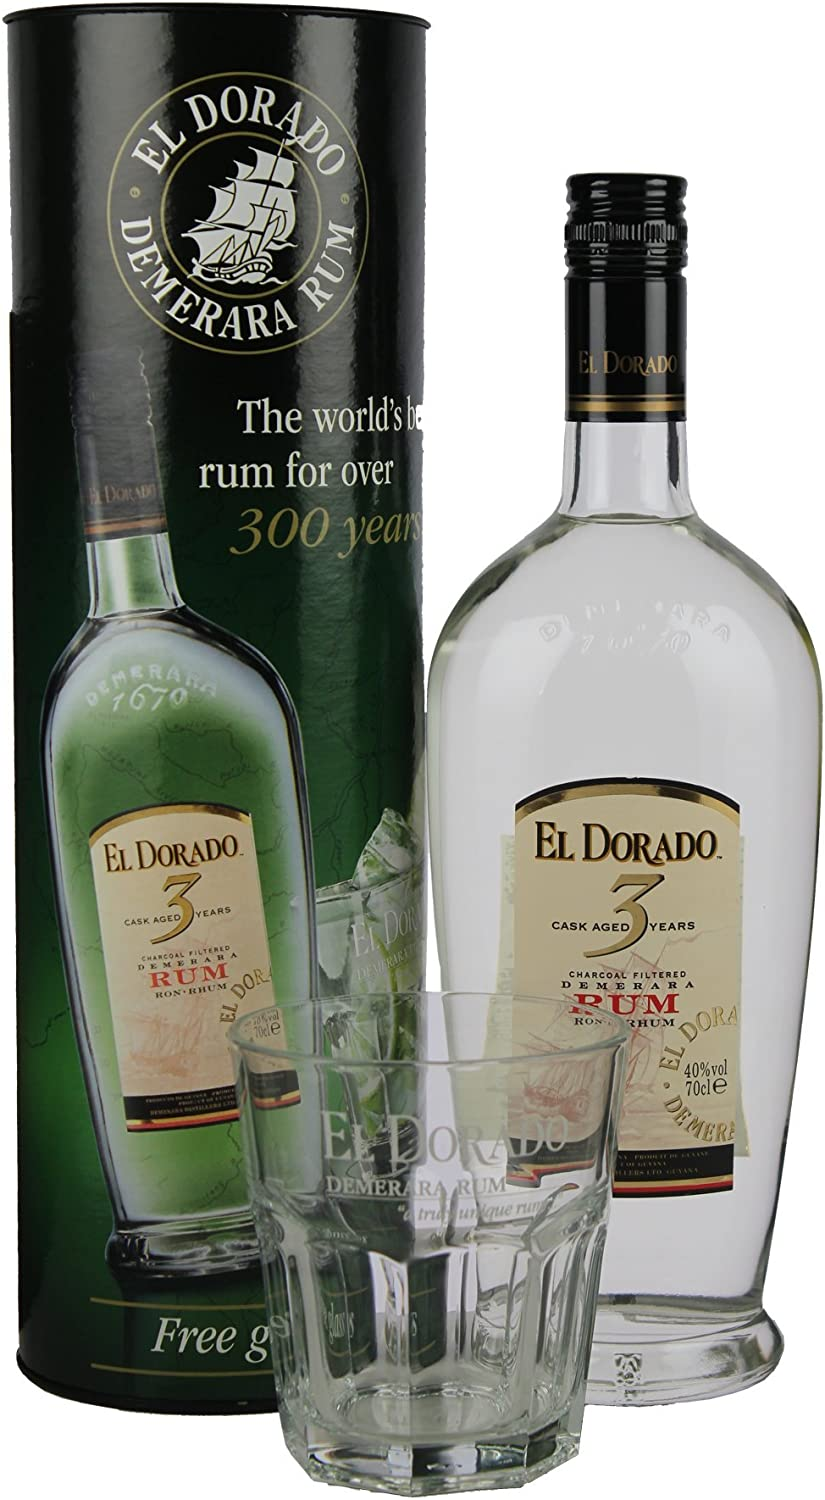 El Dorado 3 Years Old Rum in Gift Box with Glass - 700 ml